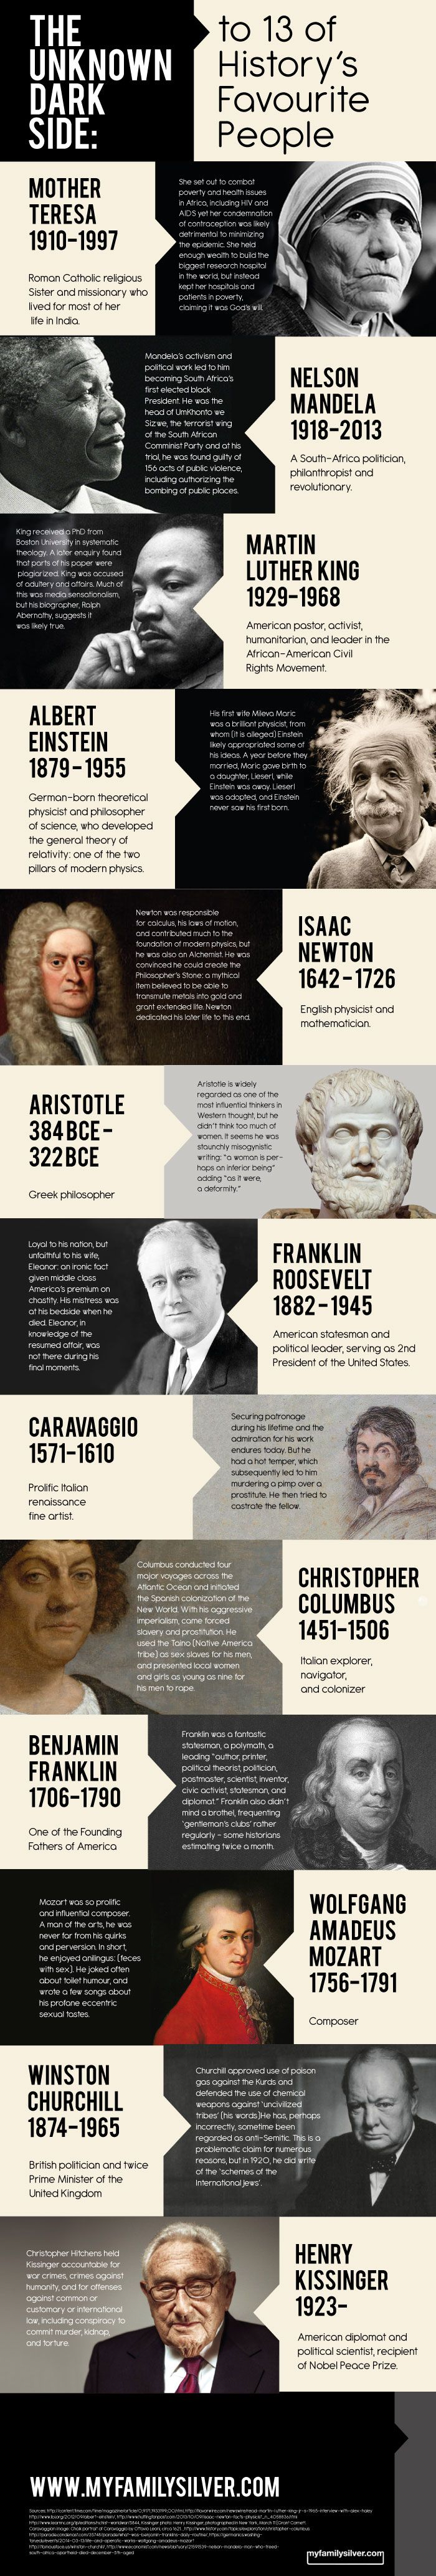 The Unknown Dark Side to 13 of History's Favourite People #infographic #SuccessfulPeople #Quotes #History